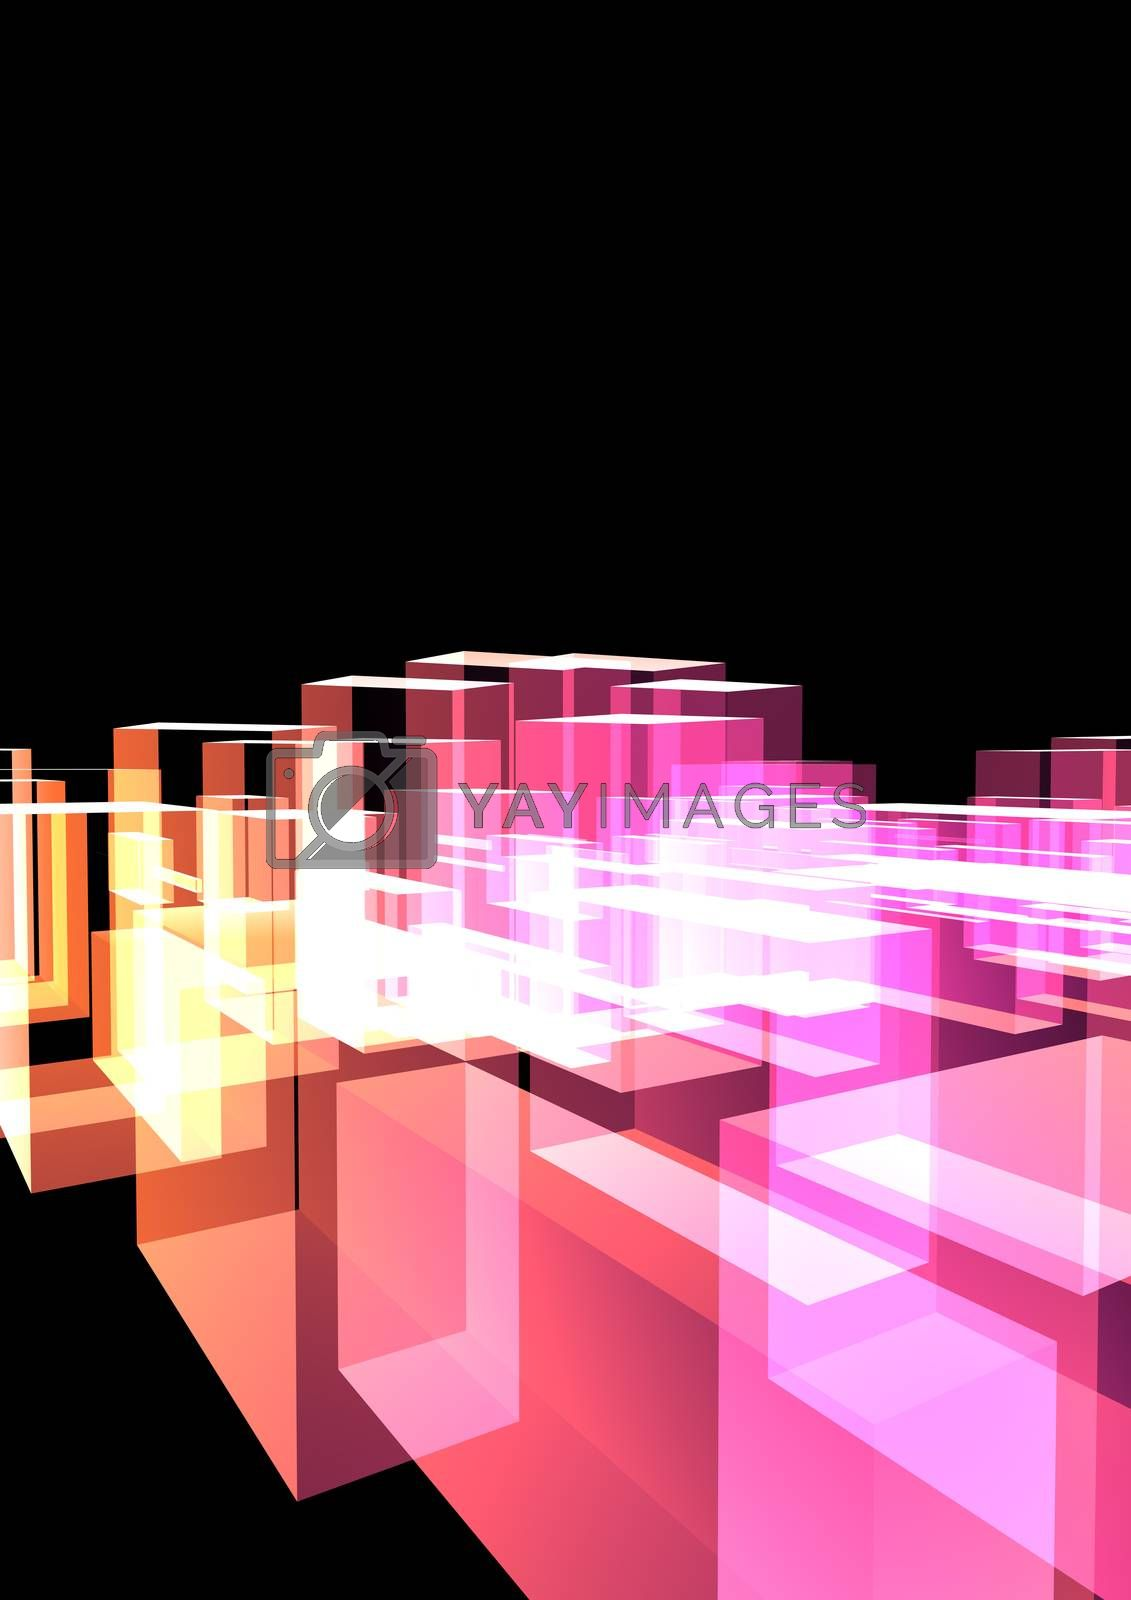 Abstract bright colorful transparent cubes on black background. Abstract glass city imitations. 3D illustration. Cover design template